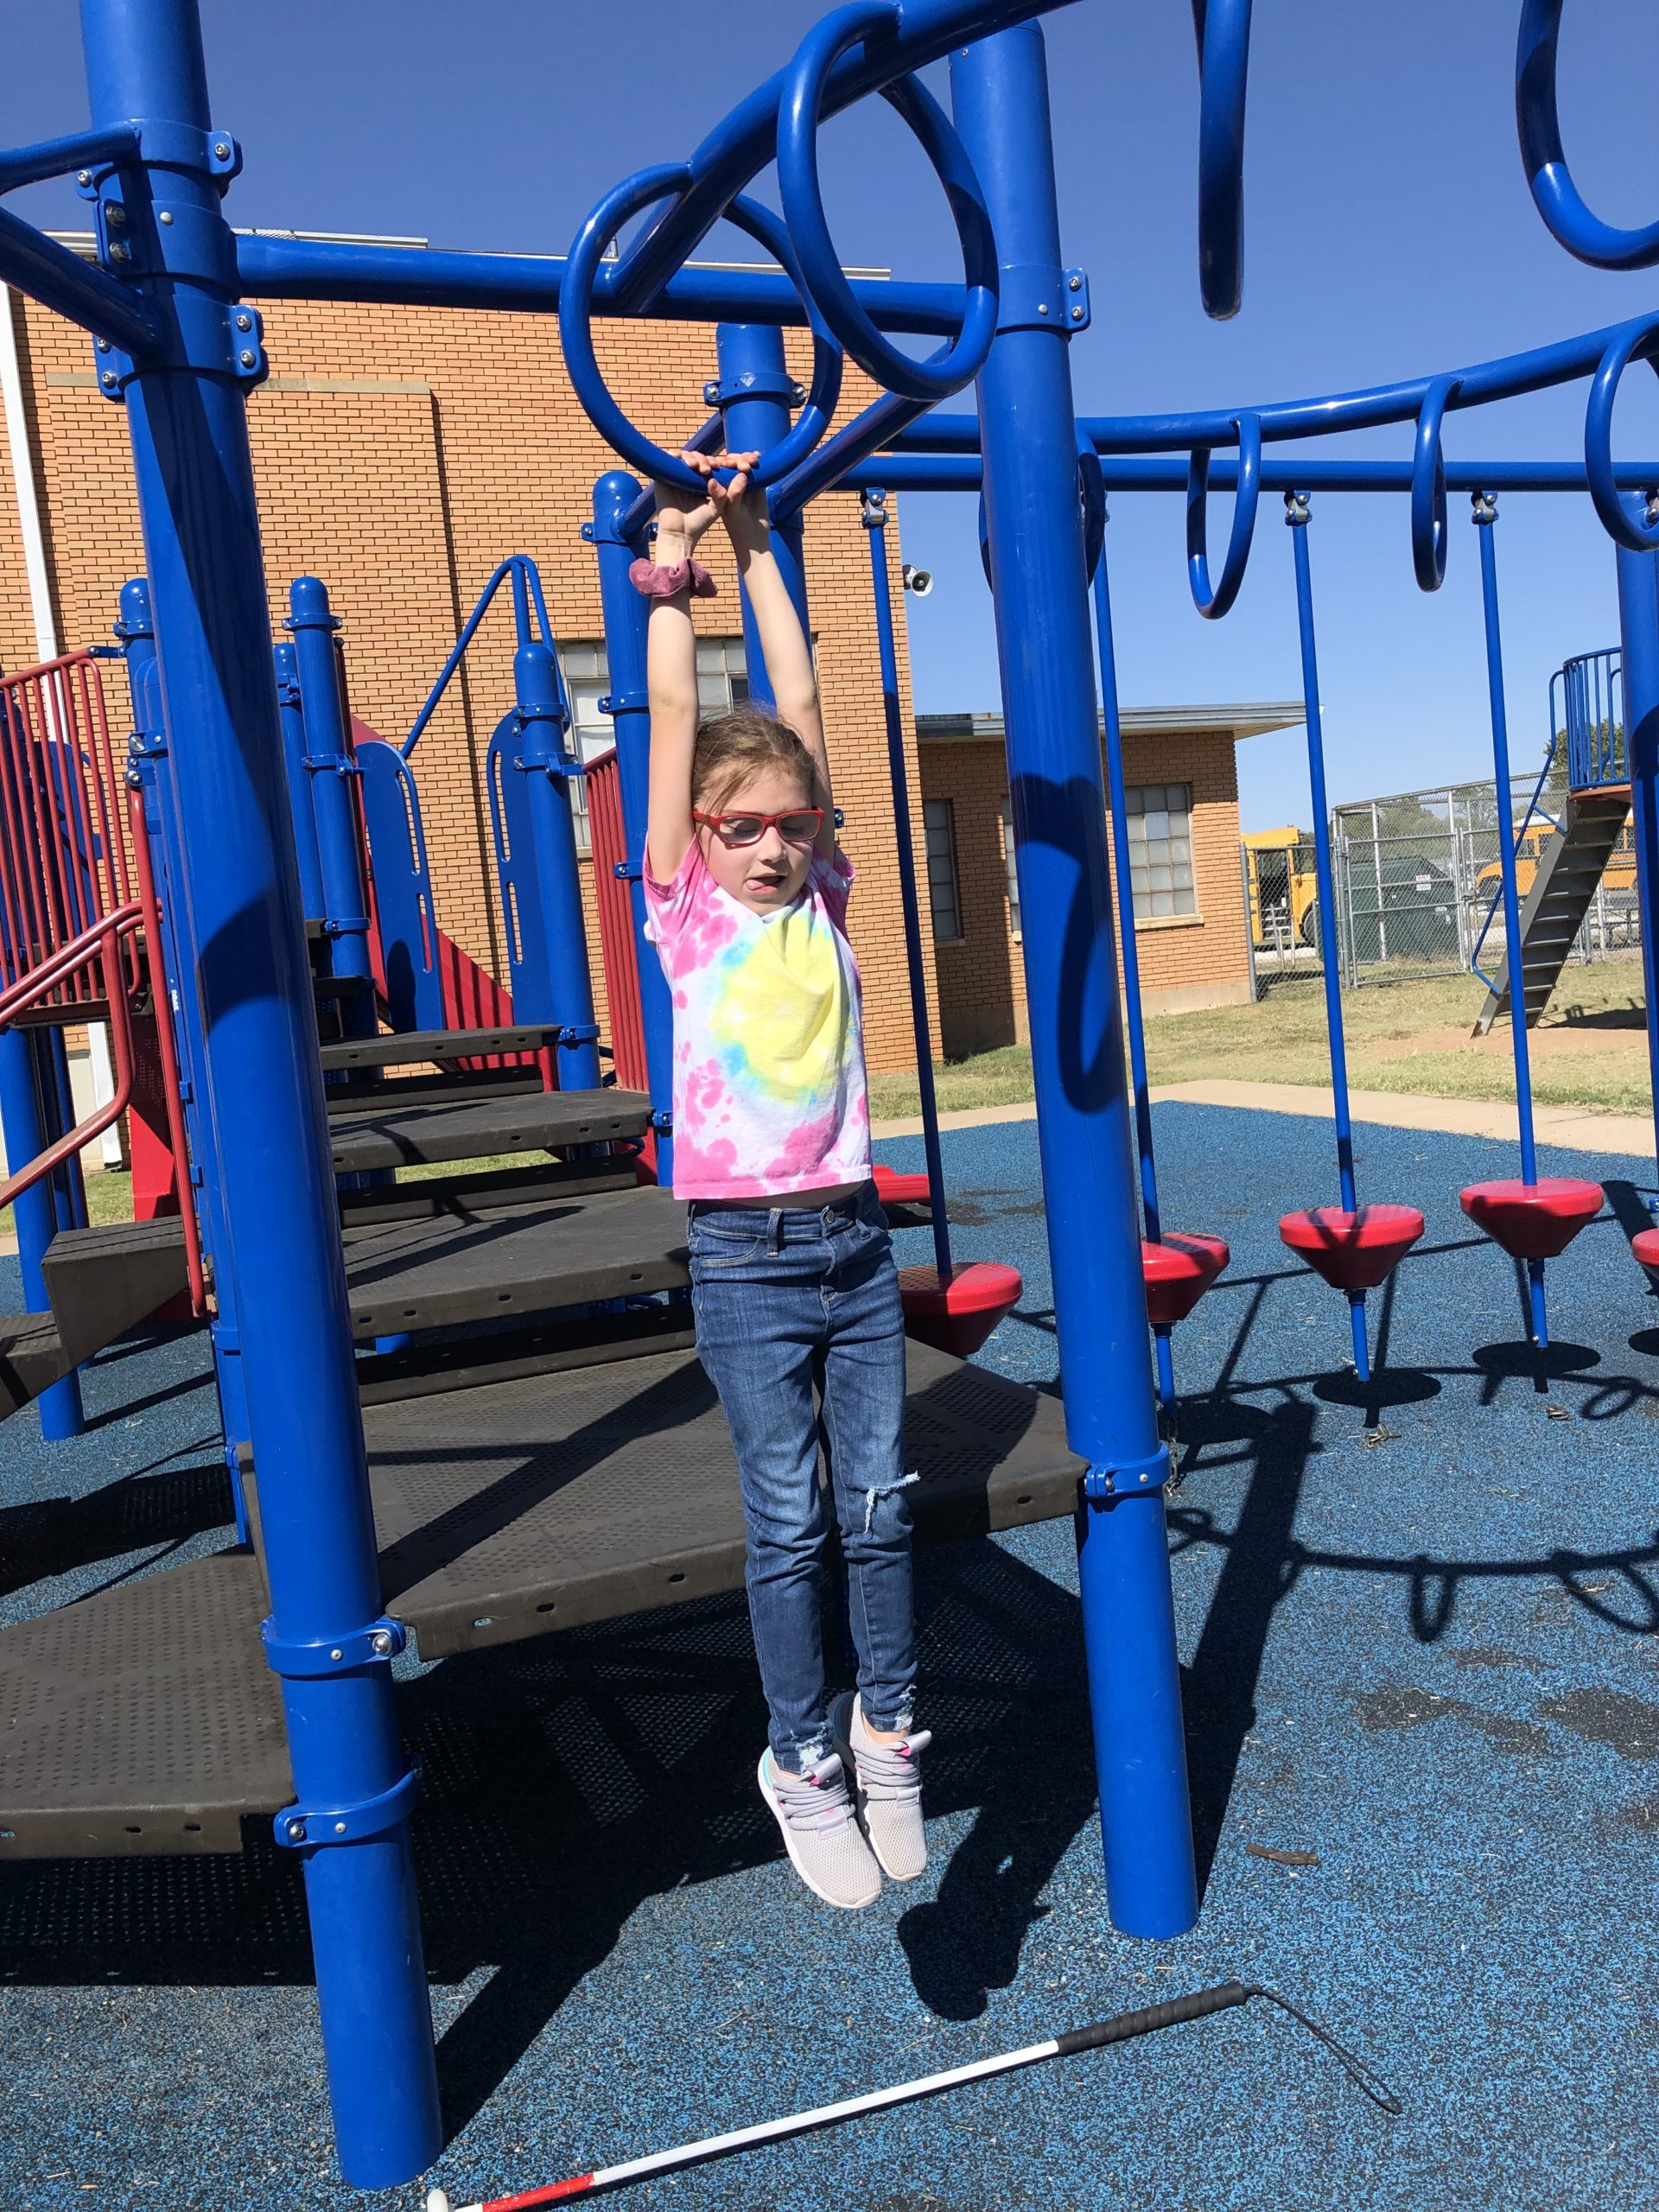 Girl Hanging From Monkey Bars At School Playground